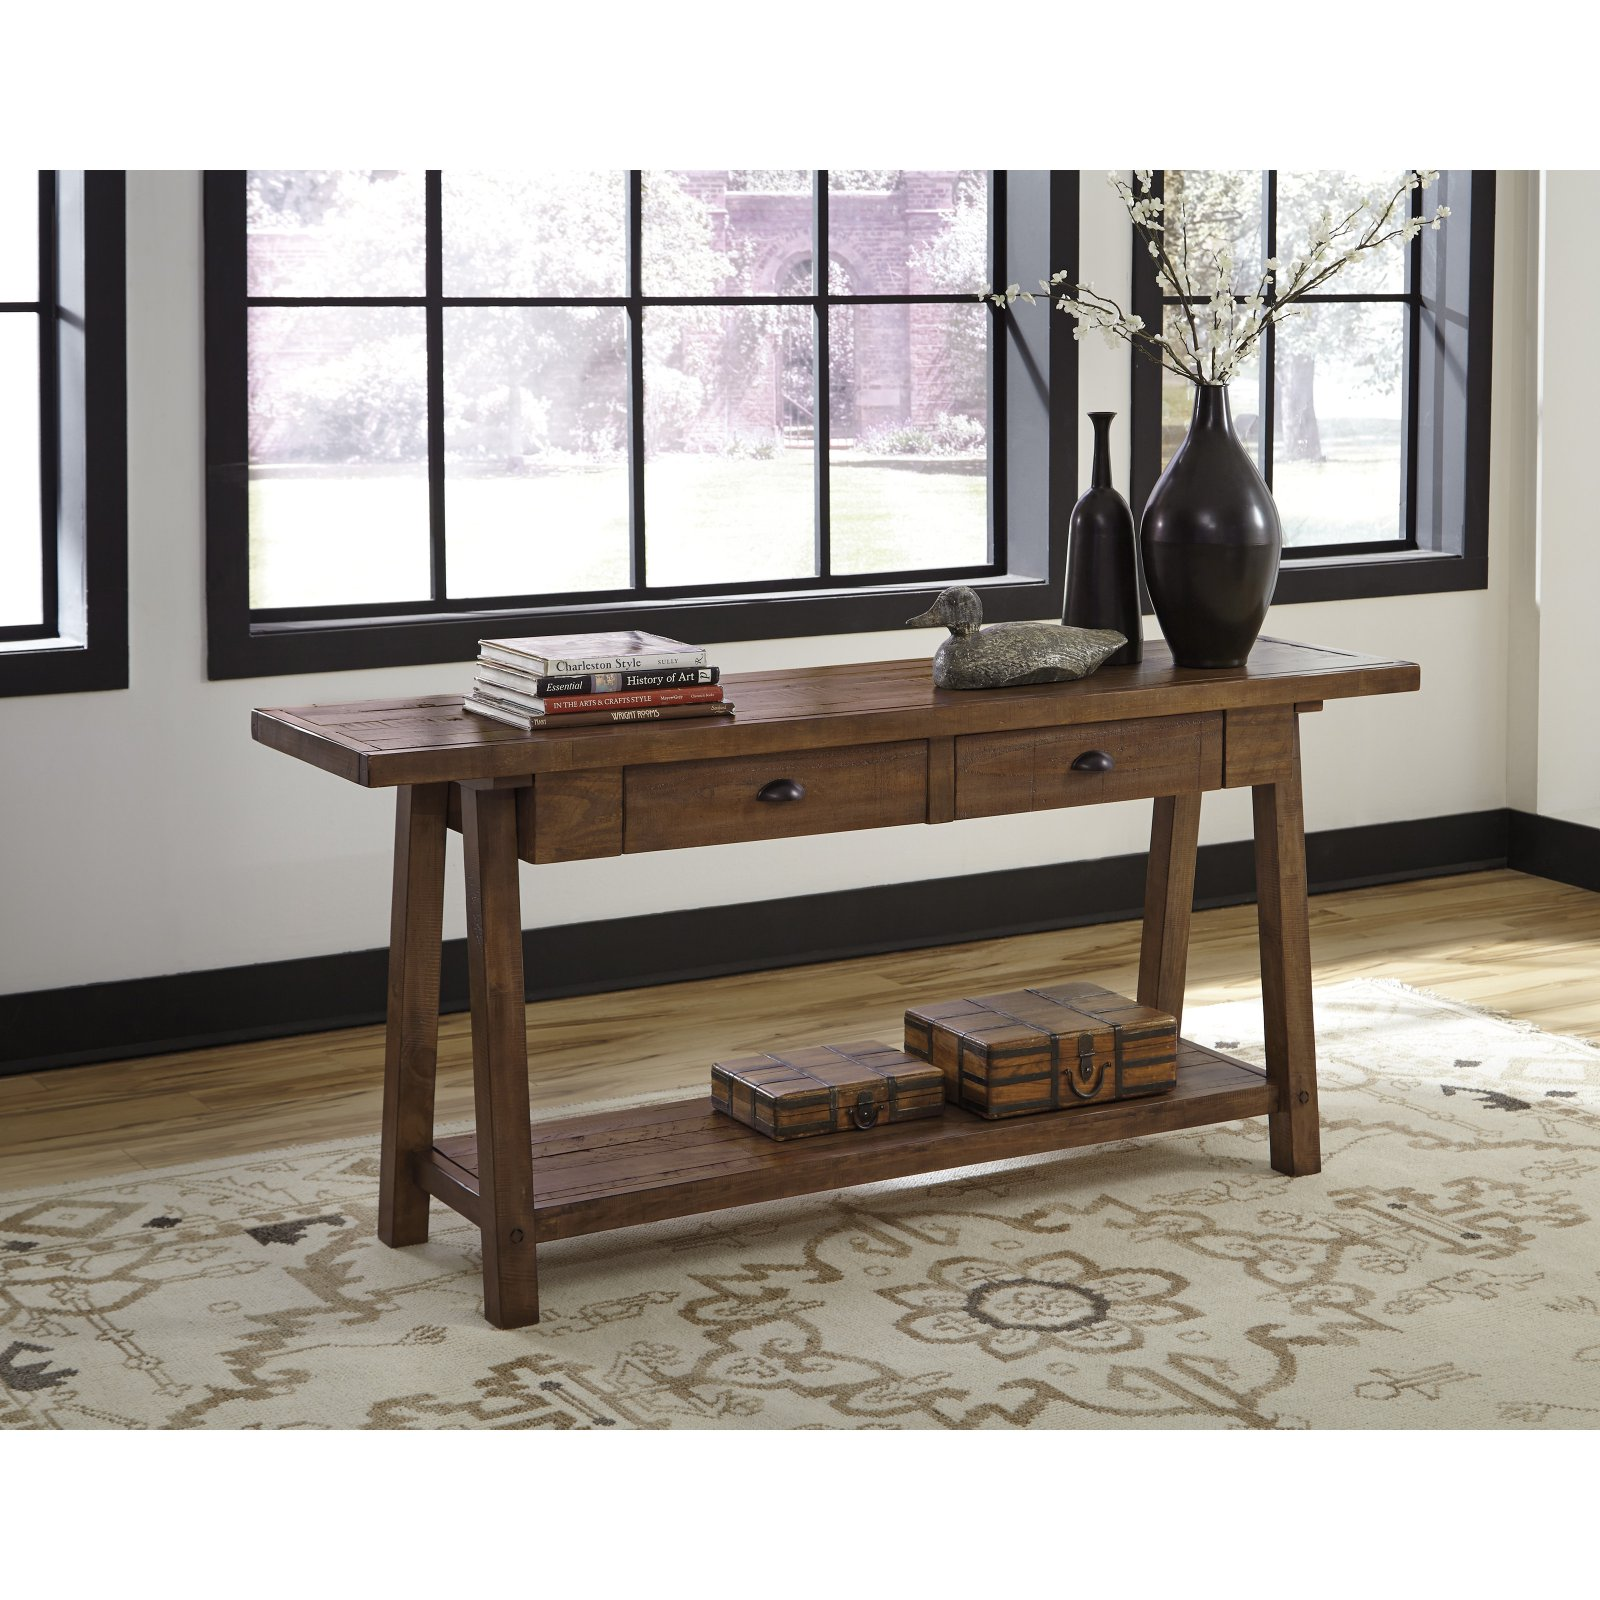 Signature Design by Ashley Dondie Sofa Table by Ashley Furniture